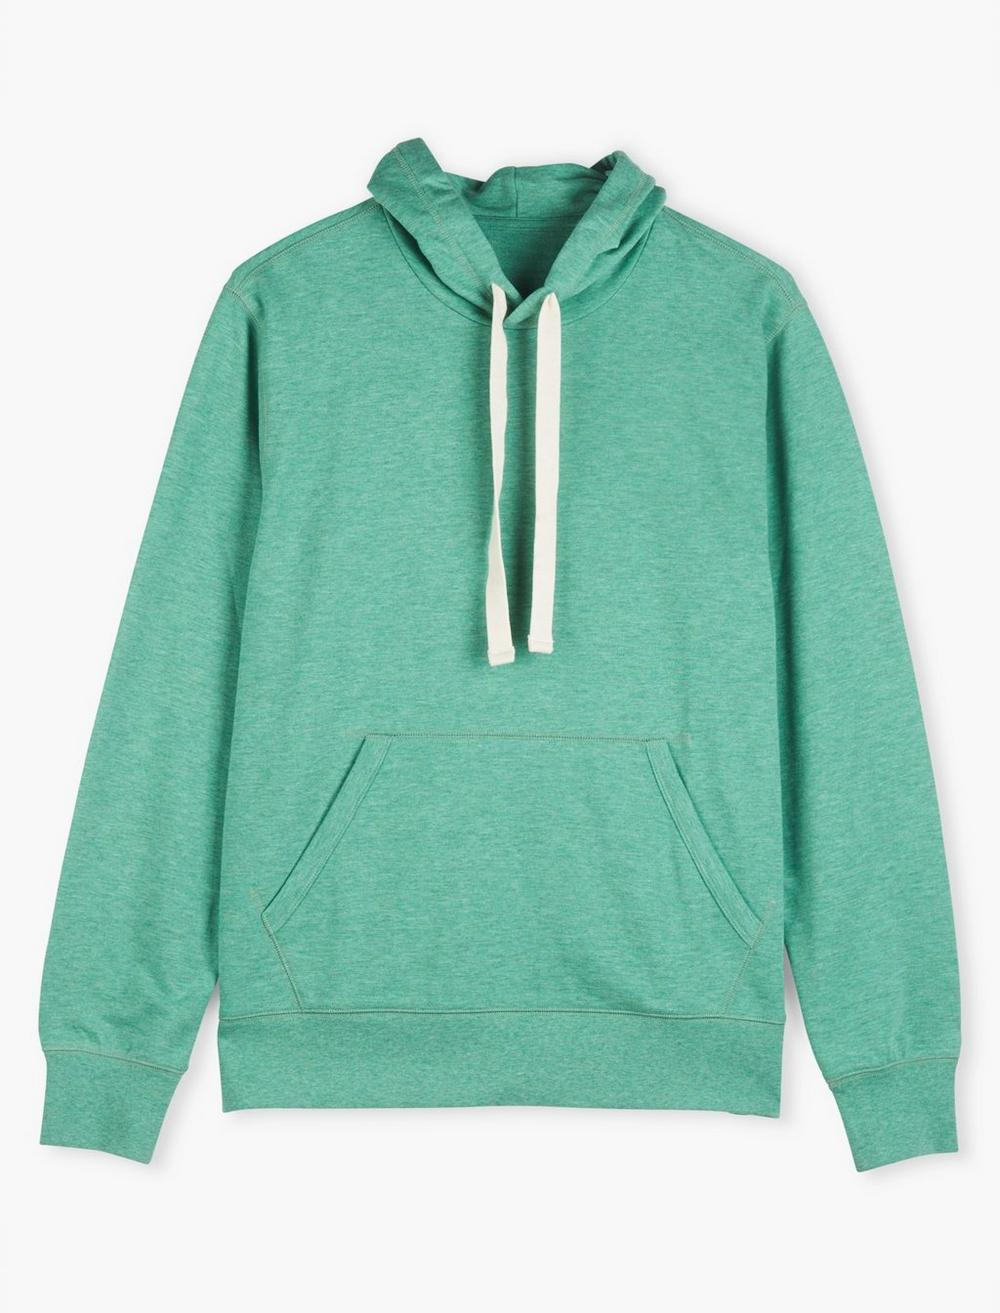 TRIBLEND FRENCH TERRY HOODIE, image 1